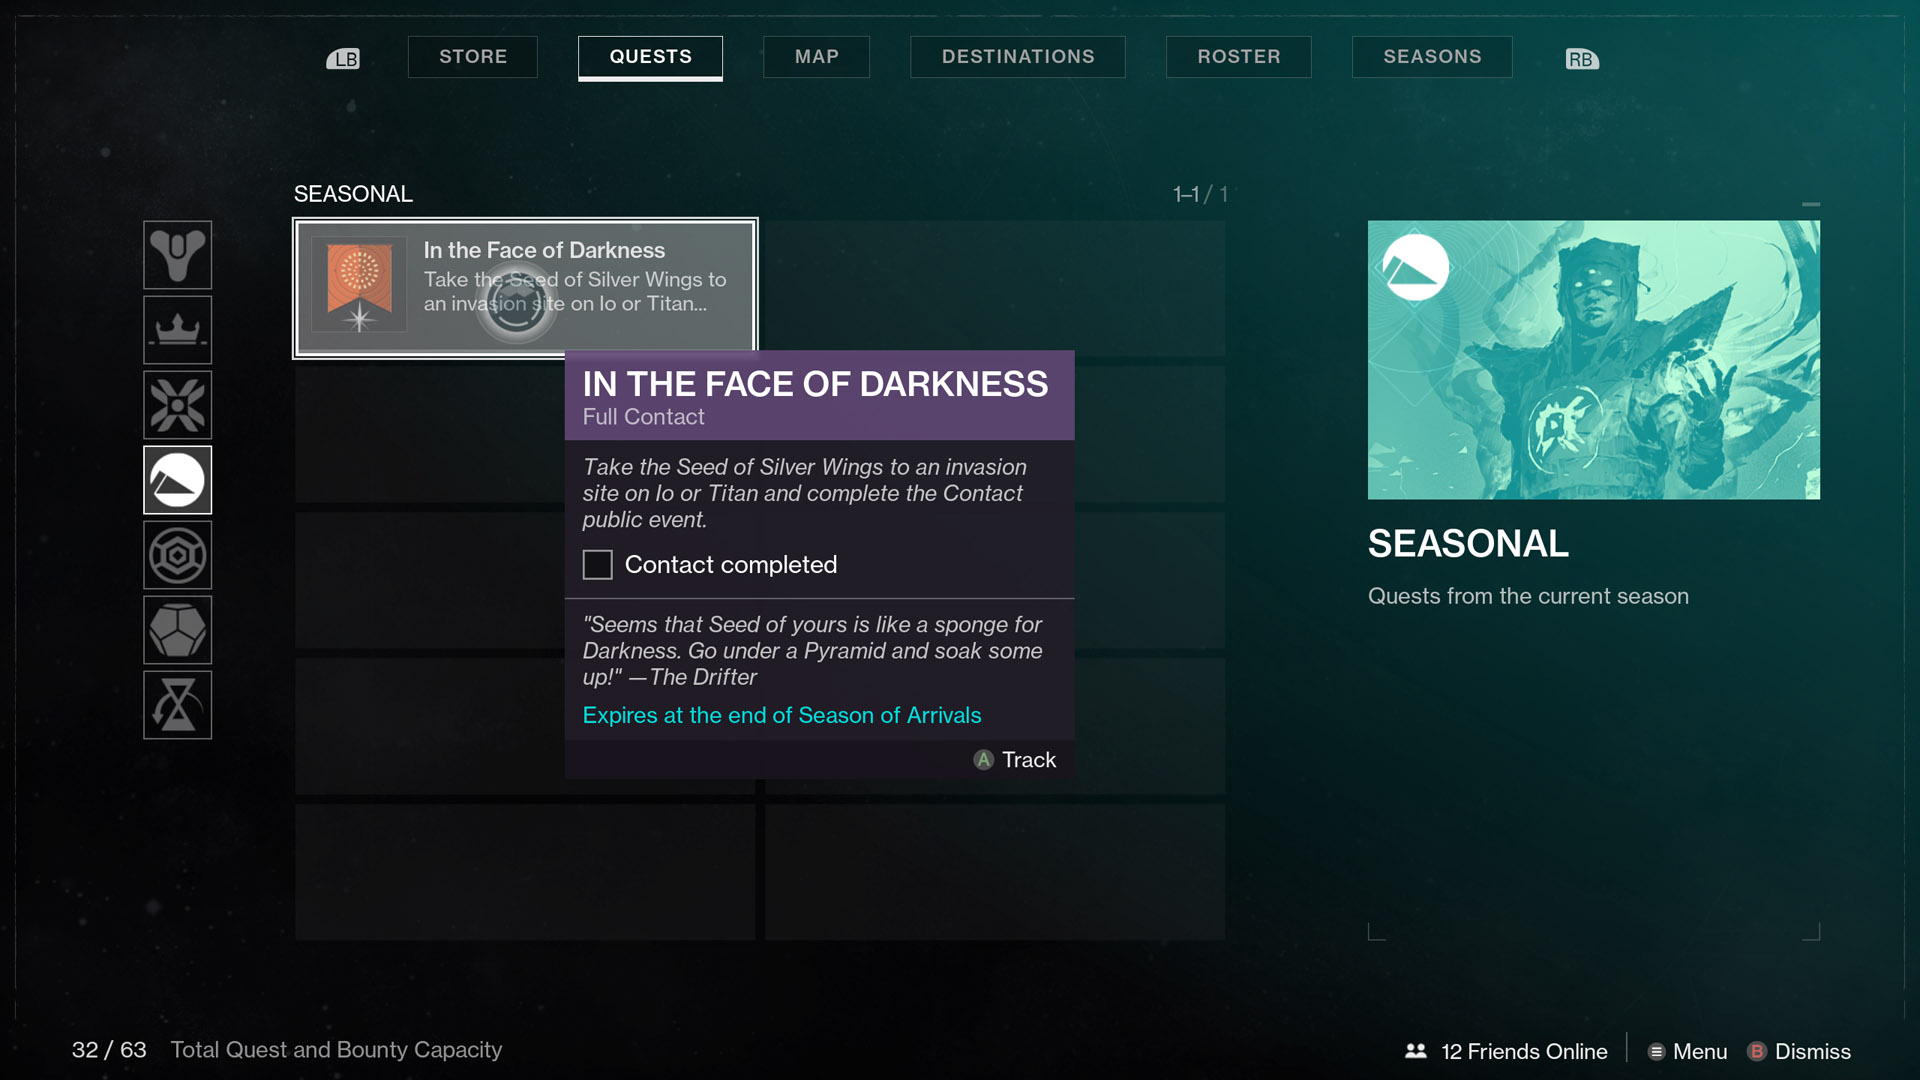 destiny 2 in the face of darkness